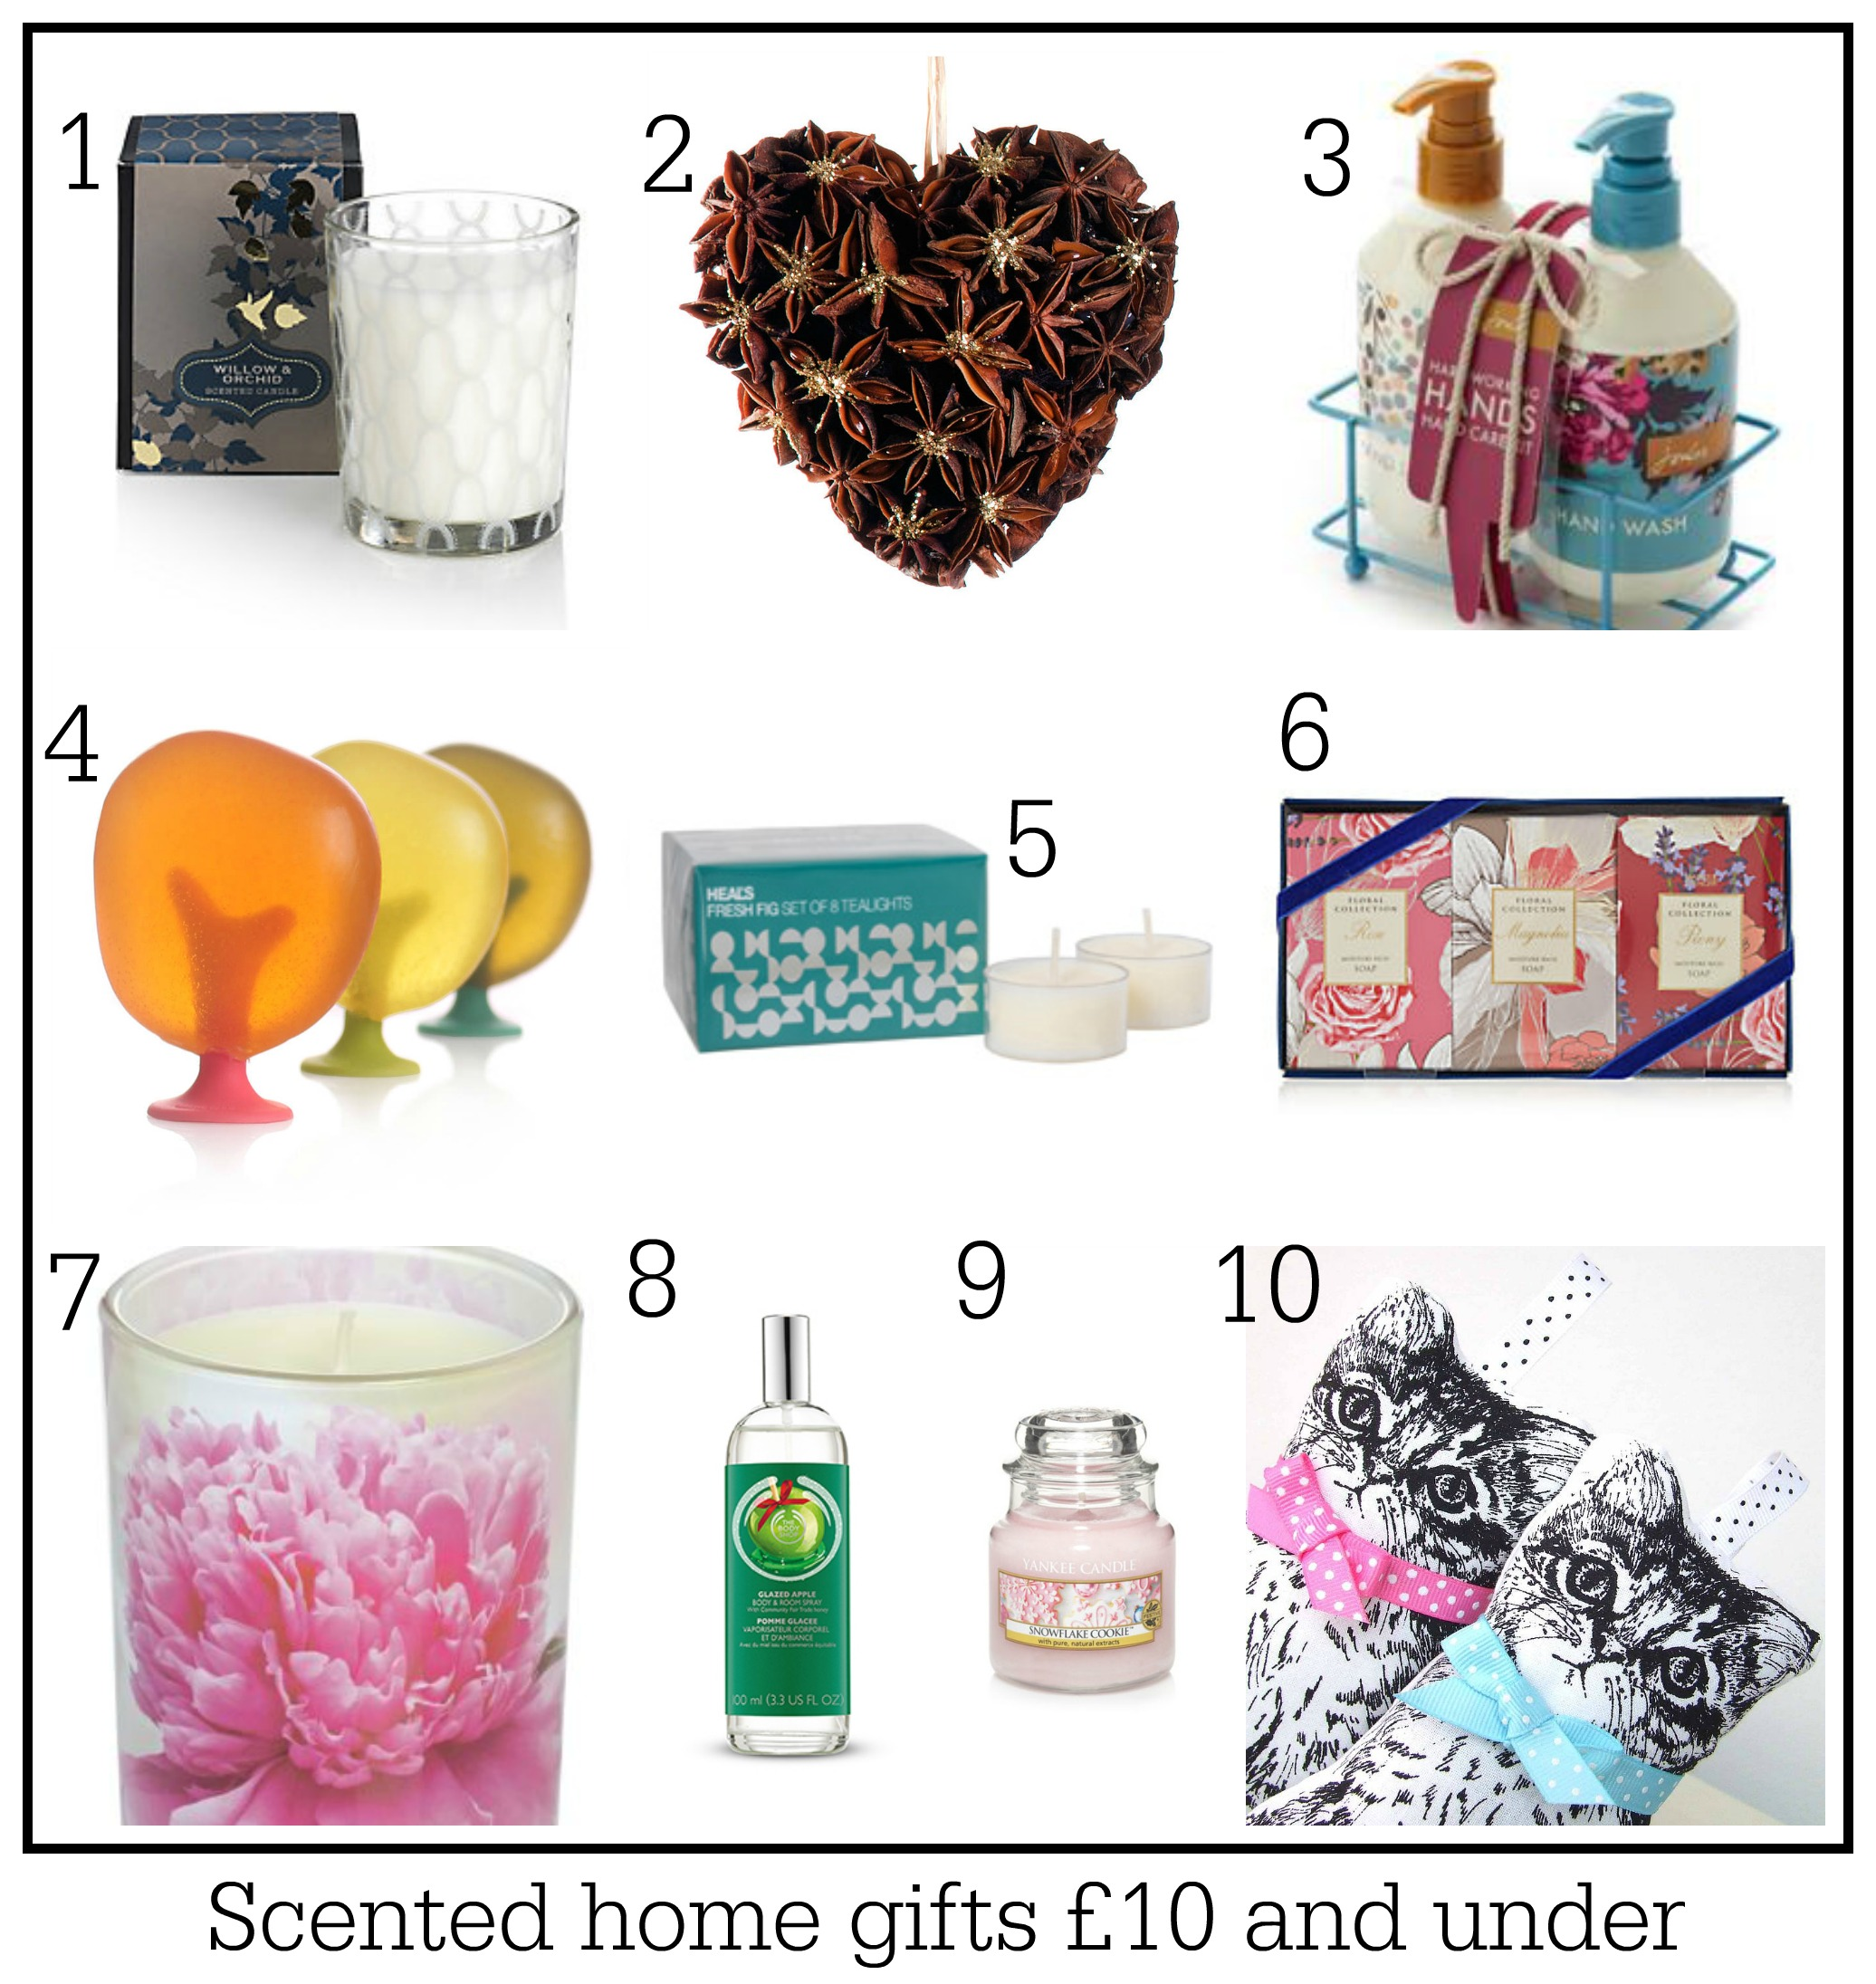 10 Scented home gift ideas: All priced £10 and under ~ Fresh Design Blog